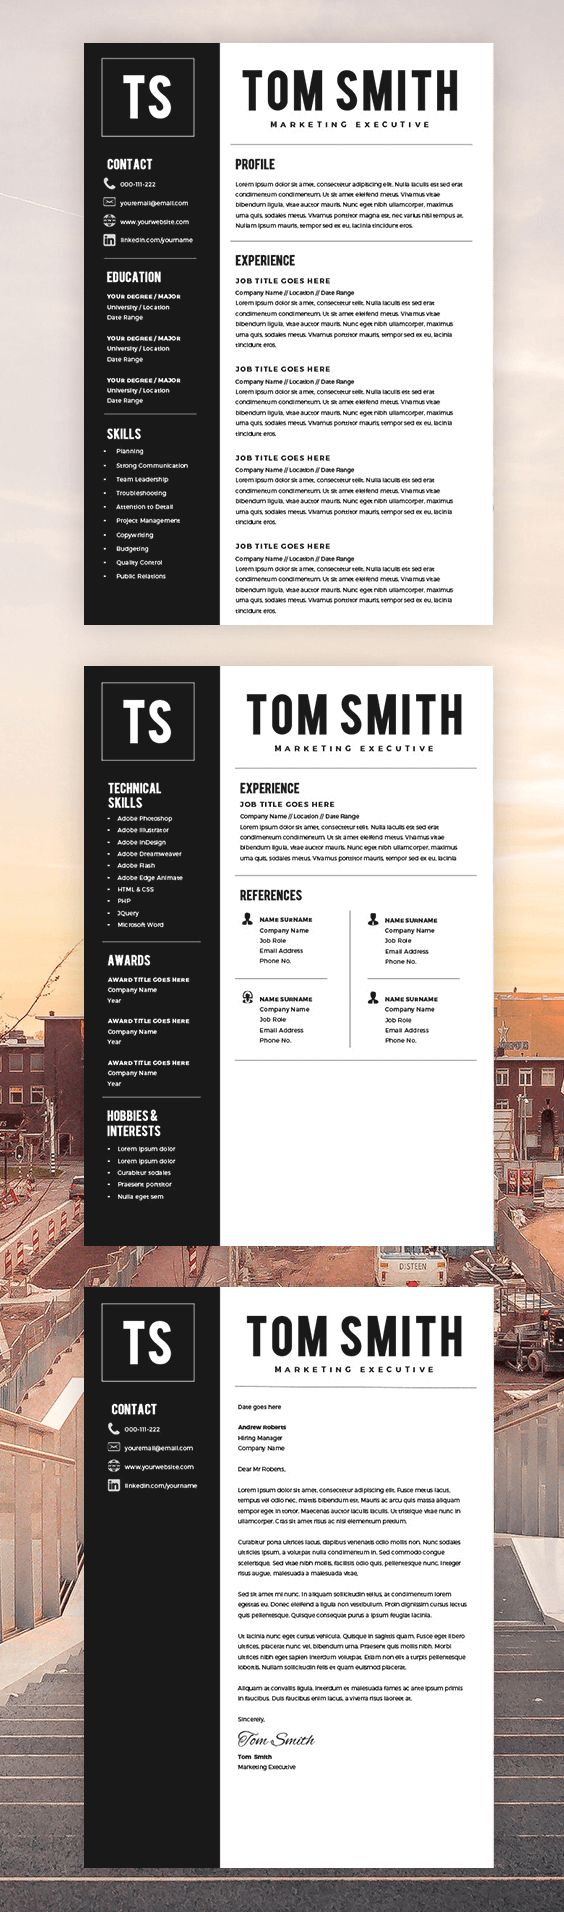 two page resume template - resume builder - cv template   cover letter   pc